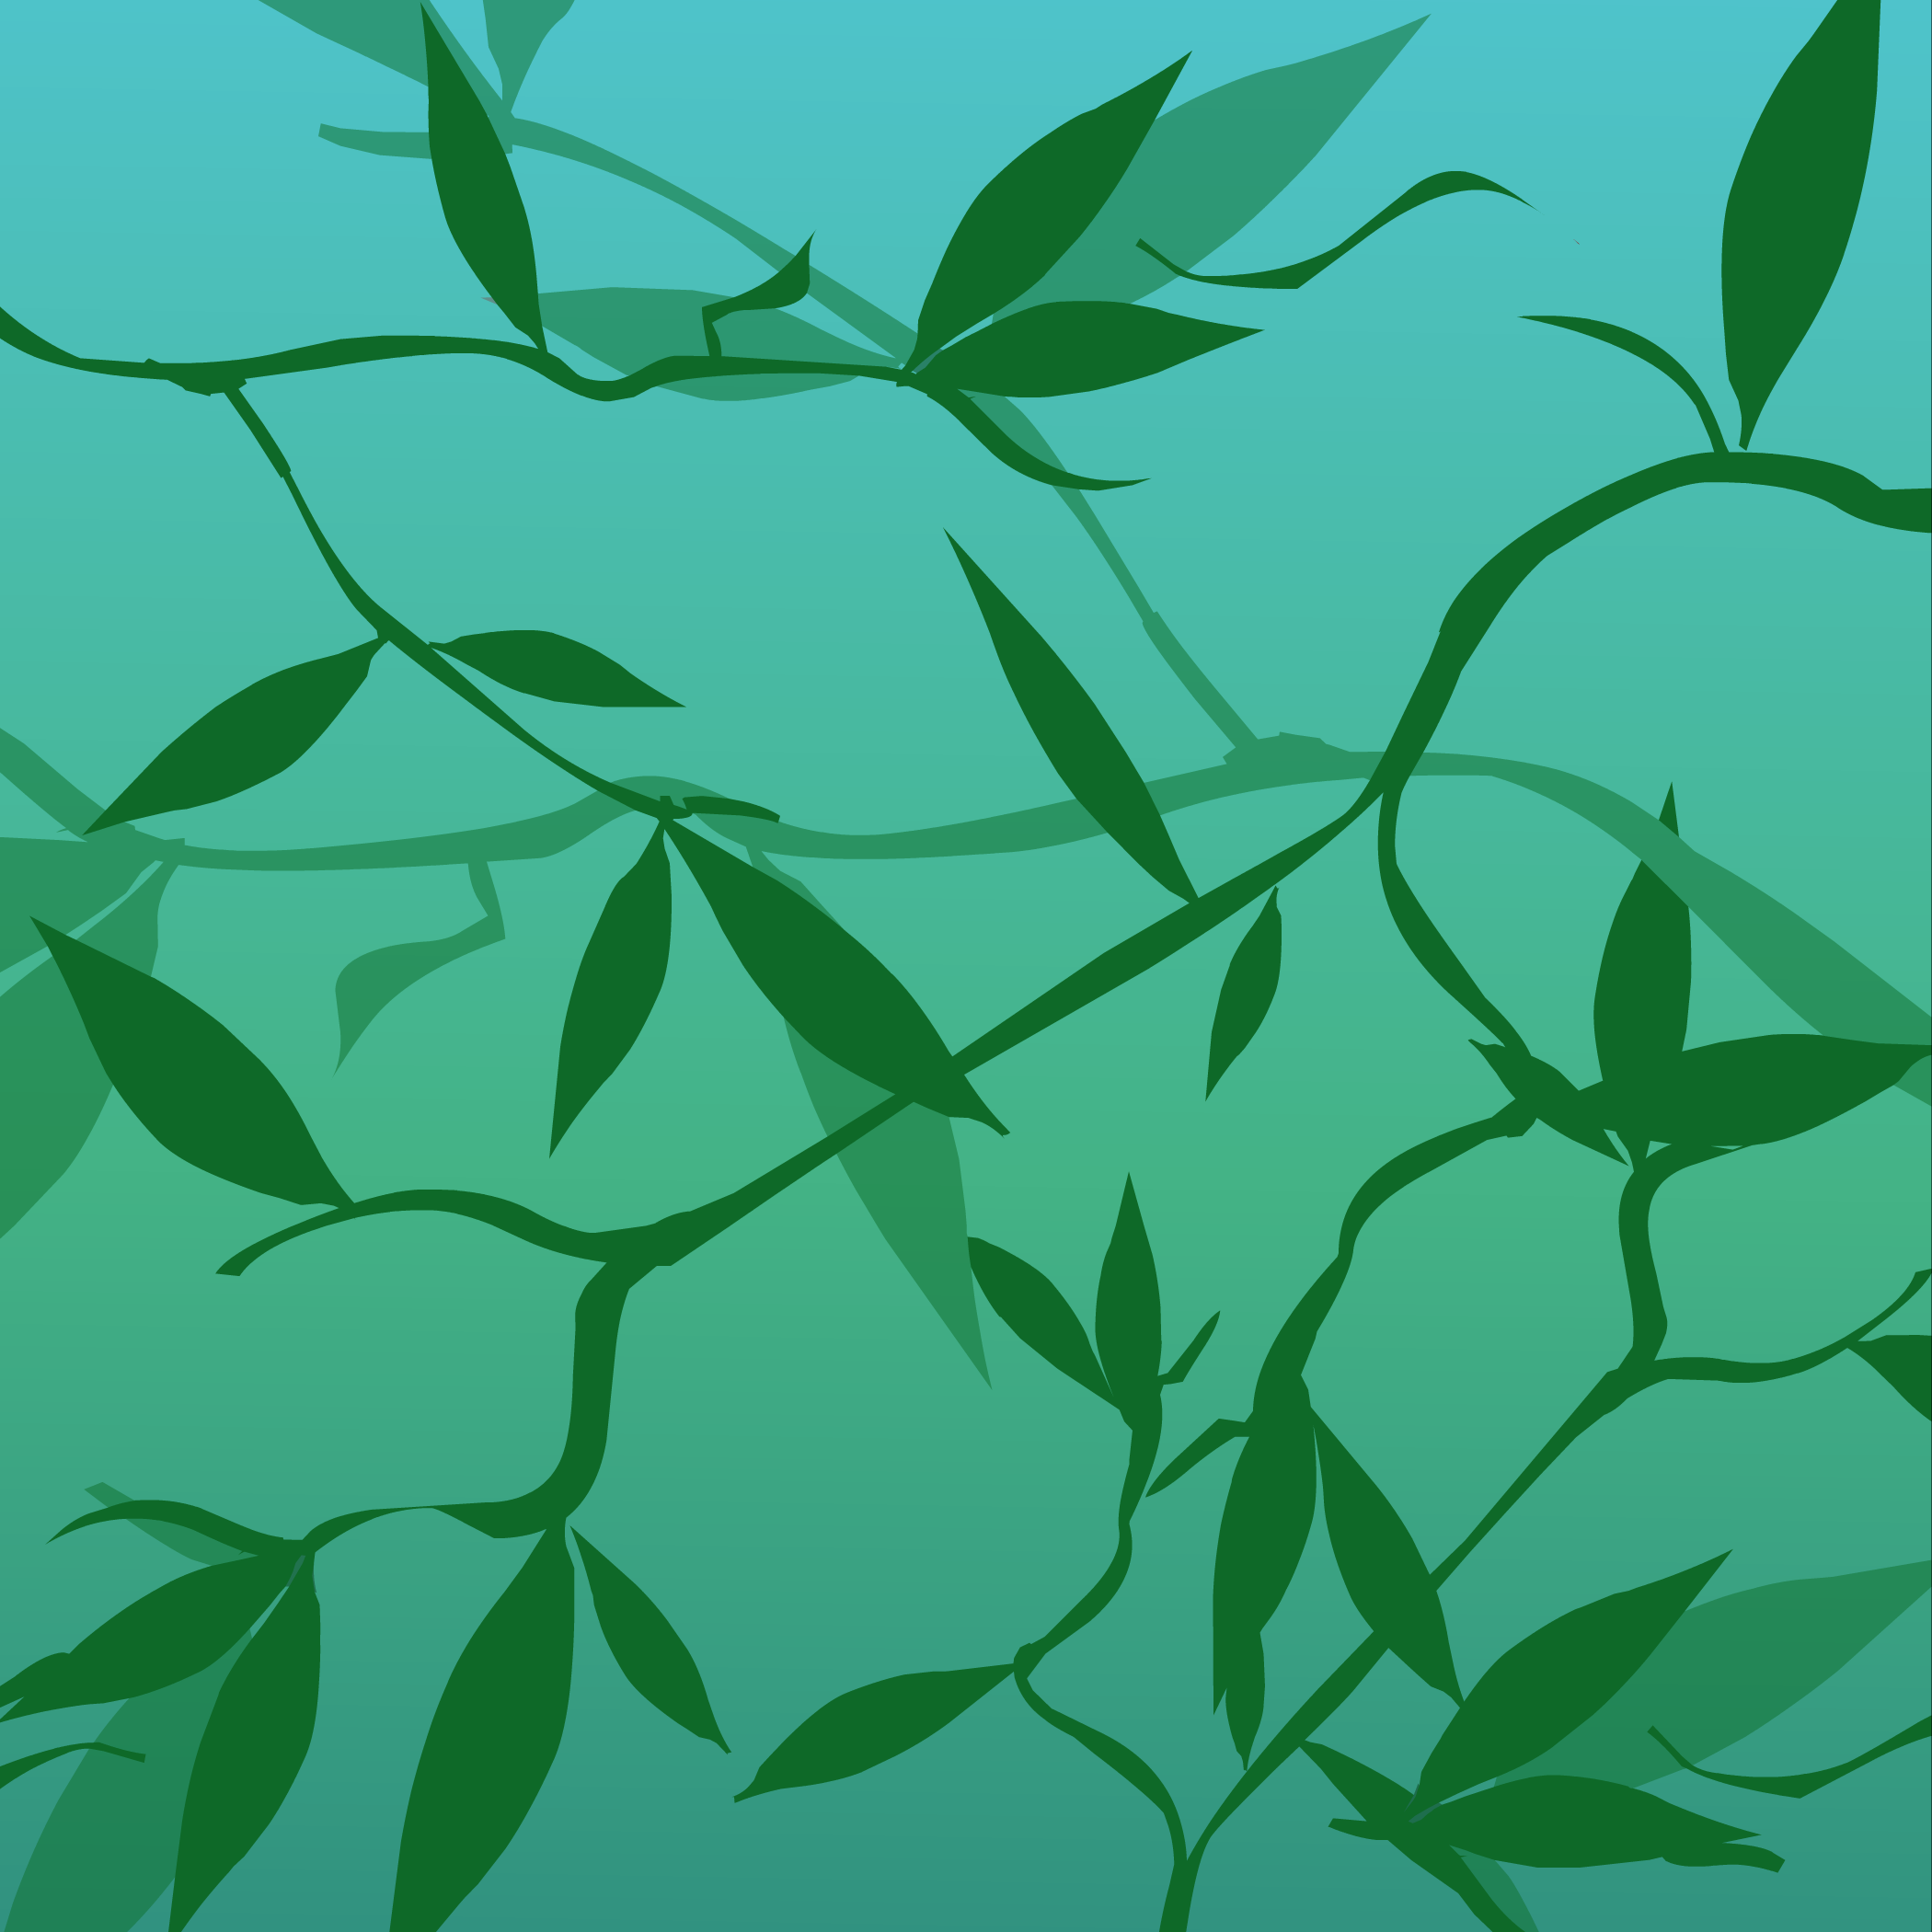 Emerald Leaves Background